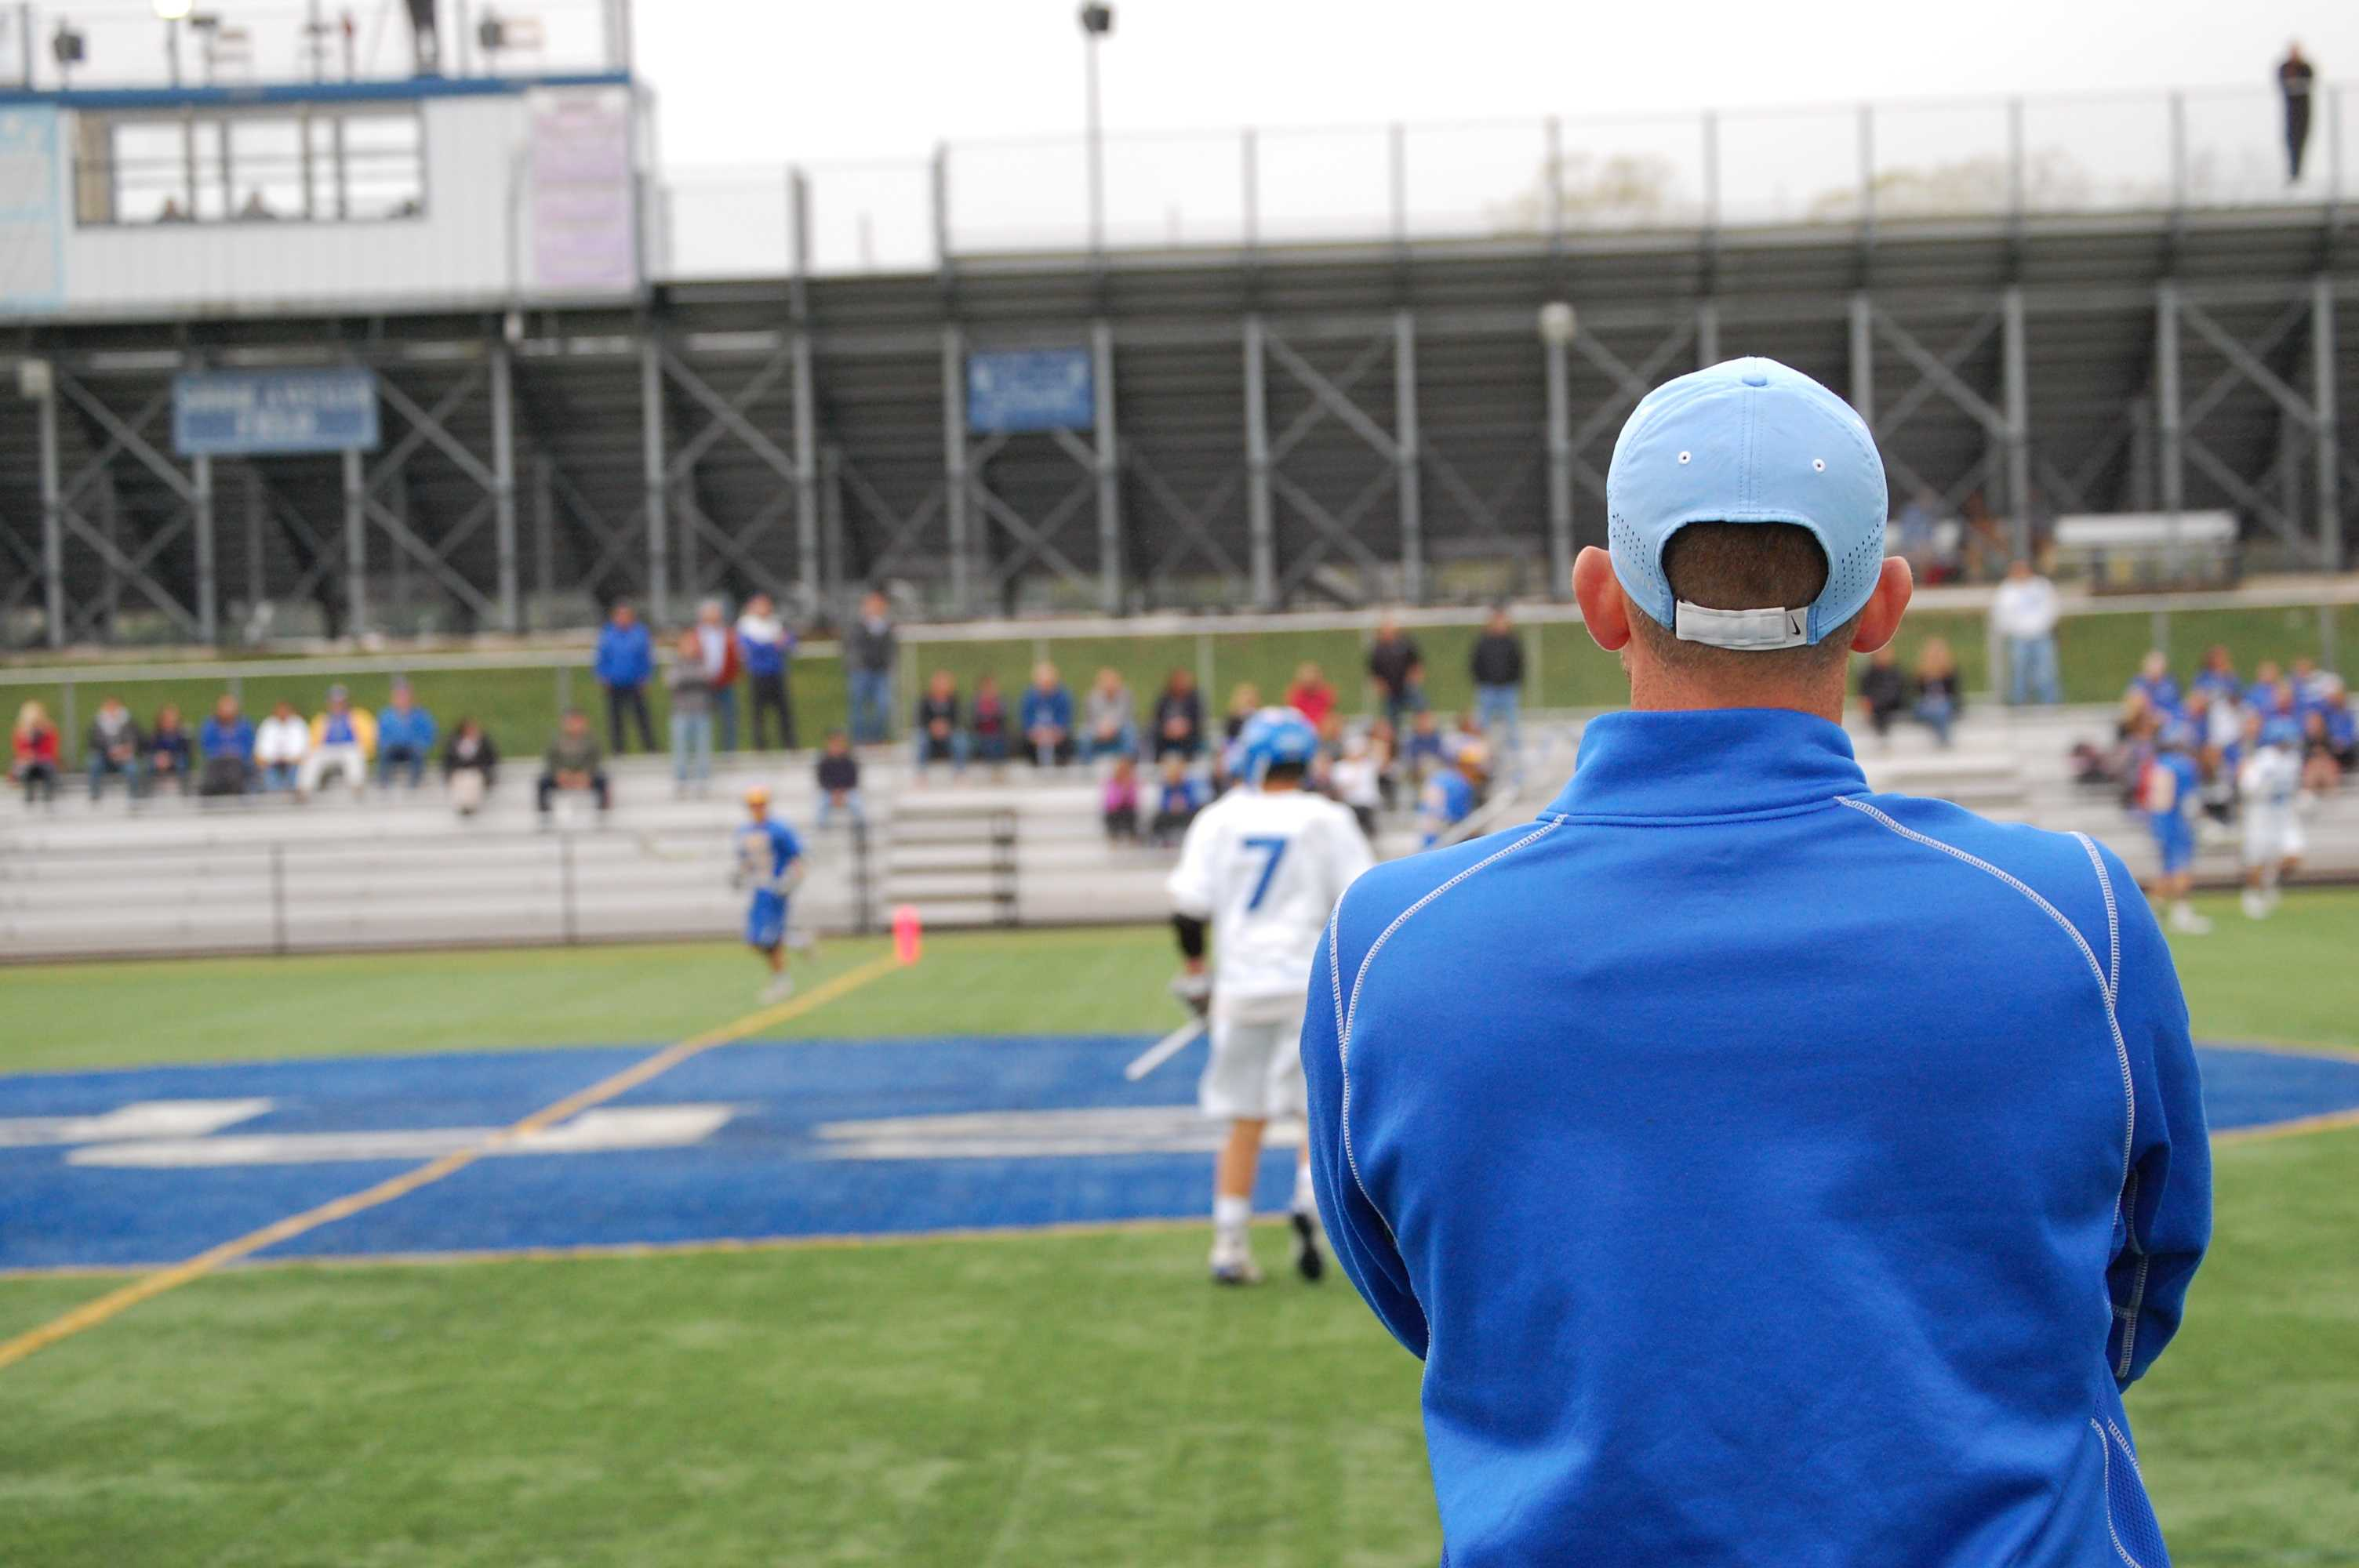 Head coach Nick Miceli looks on from the sideline.